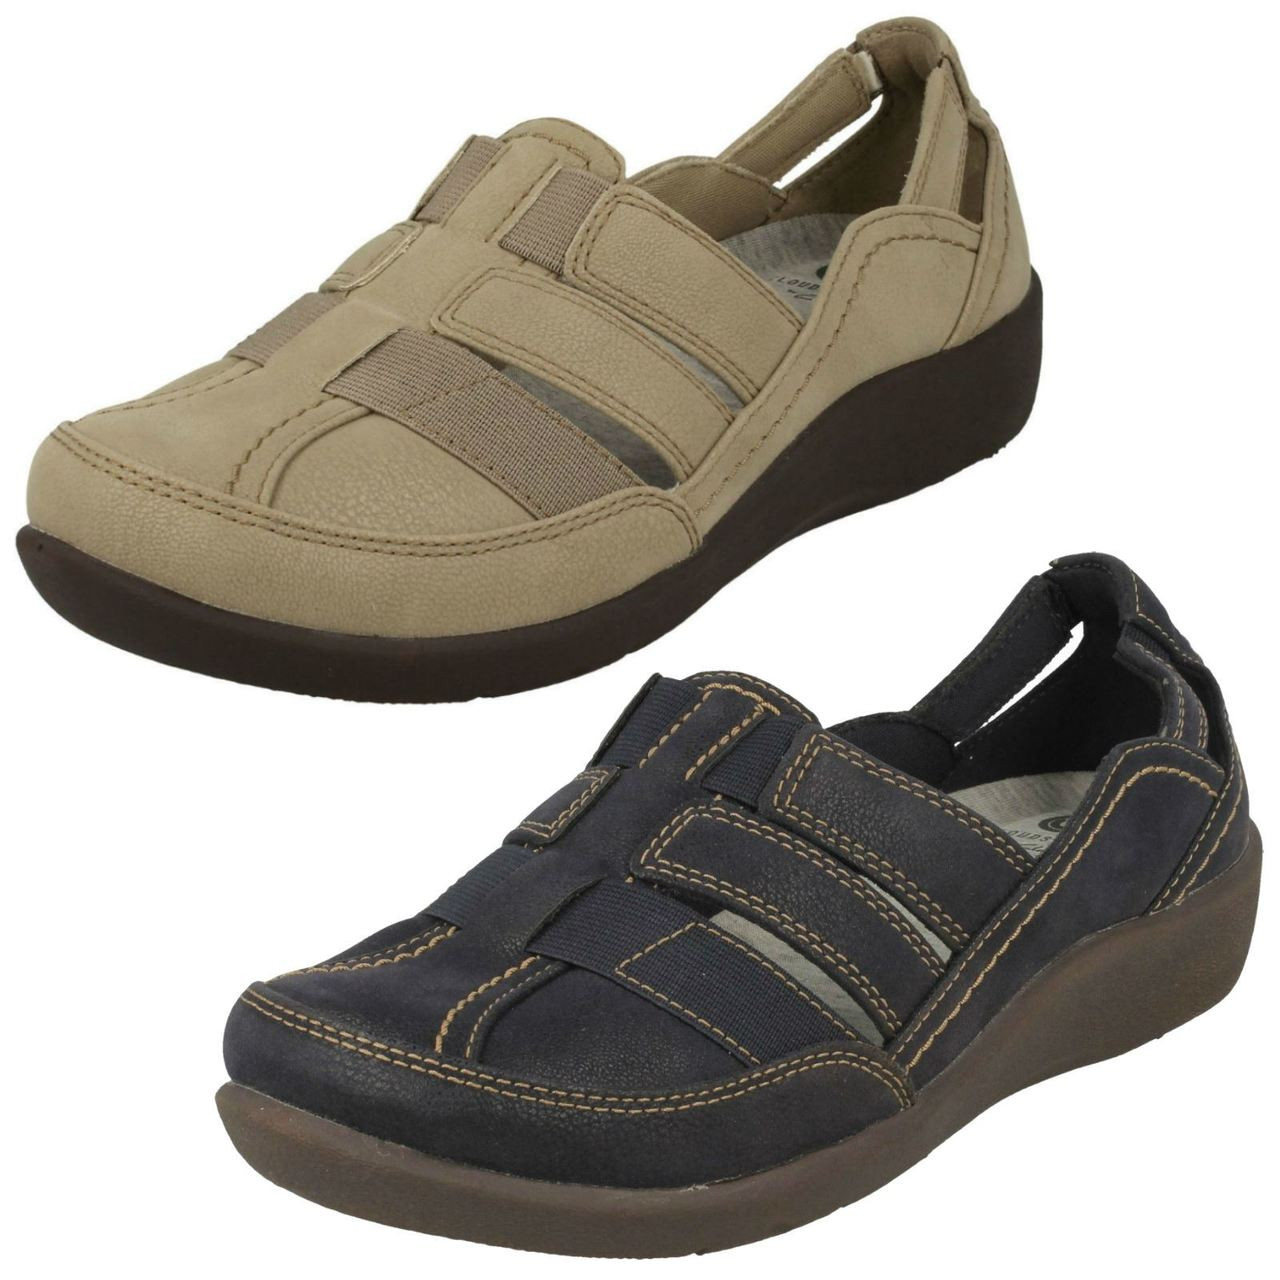 Ladies Clarks Slip On Casual Shoes